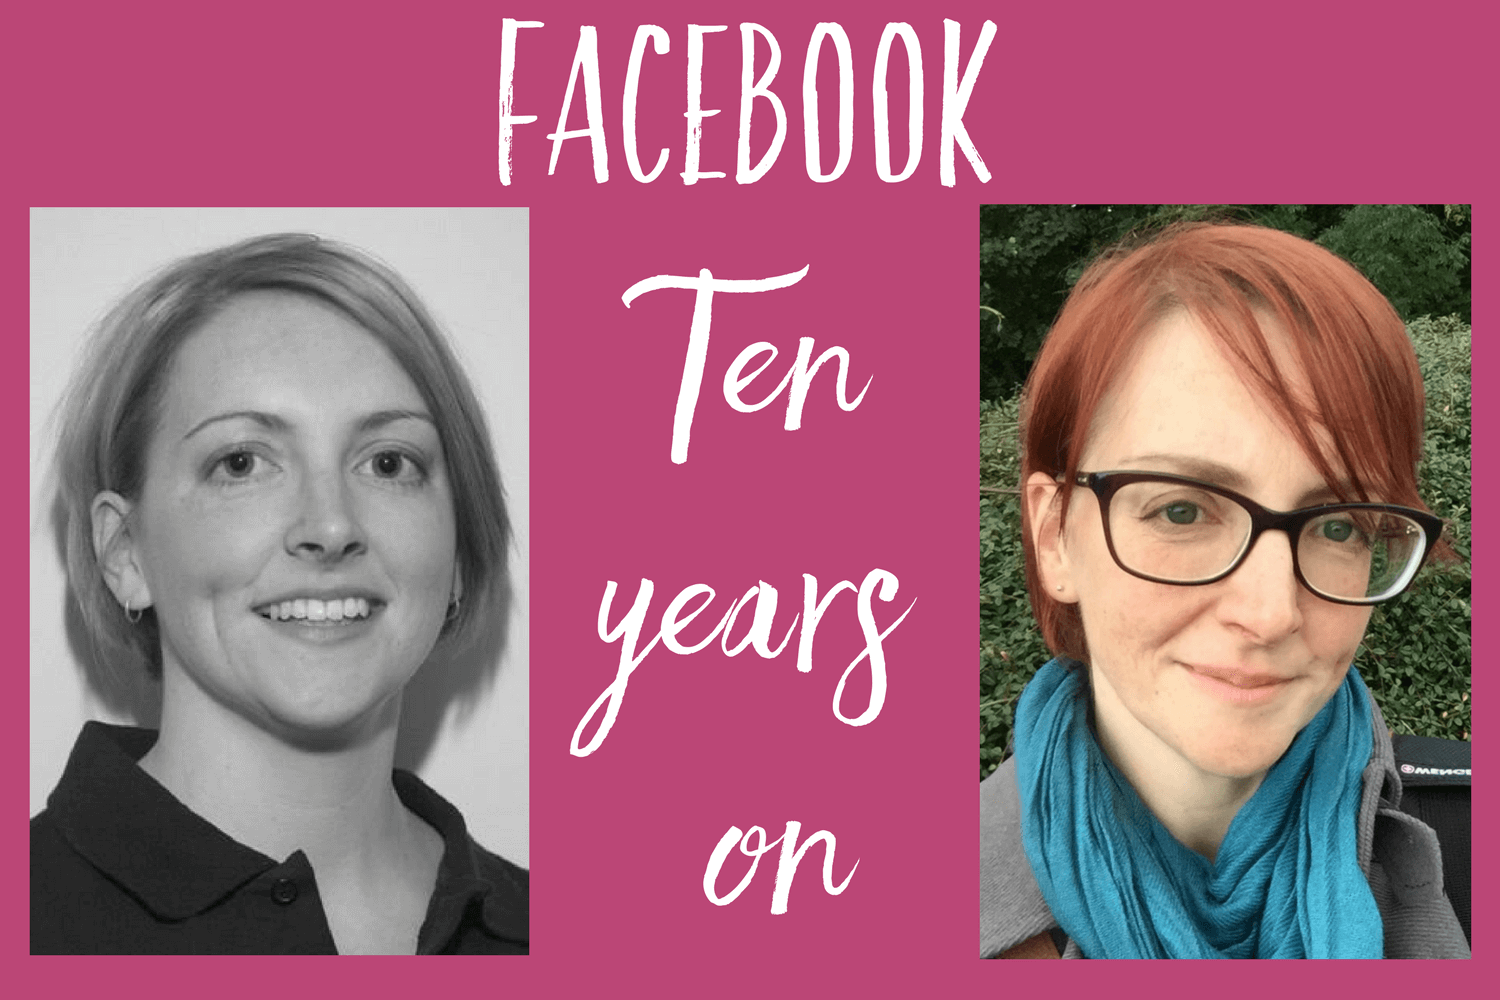 Facebook 10 years on